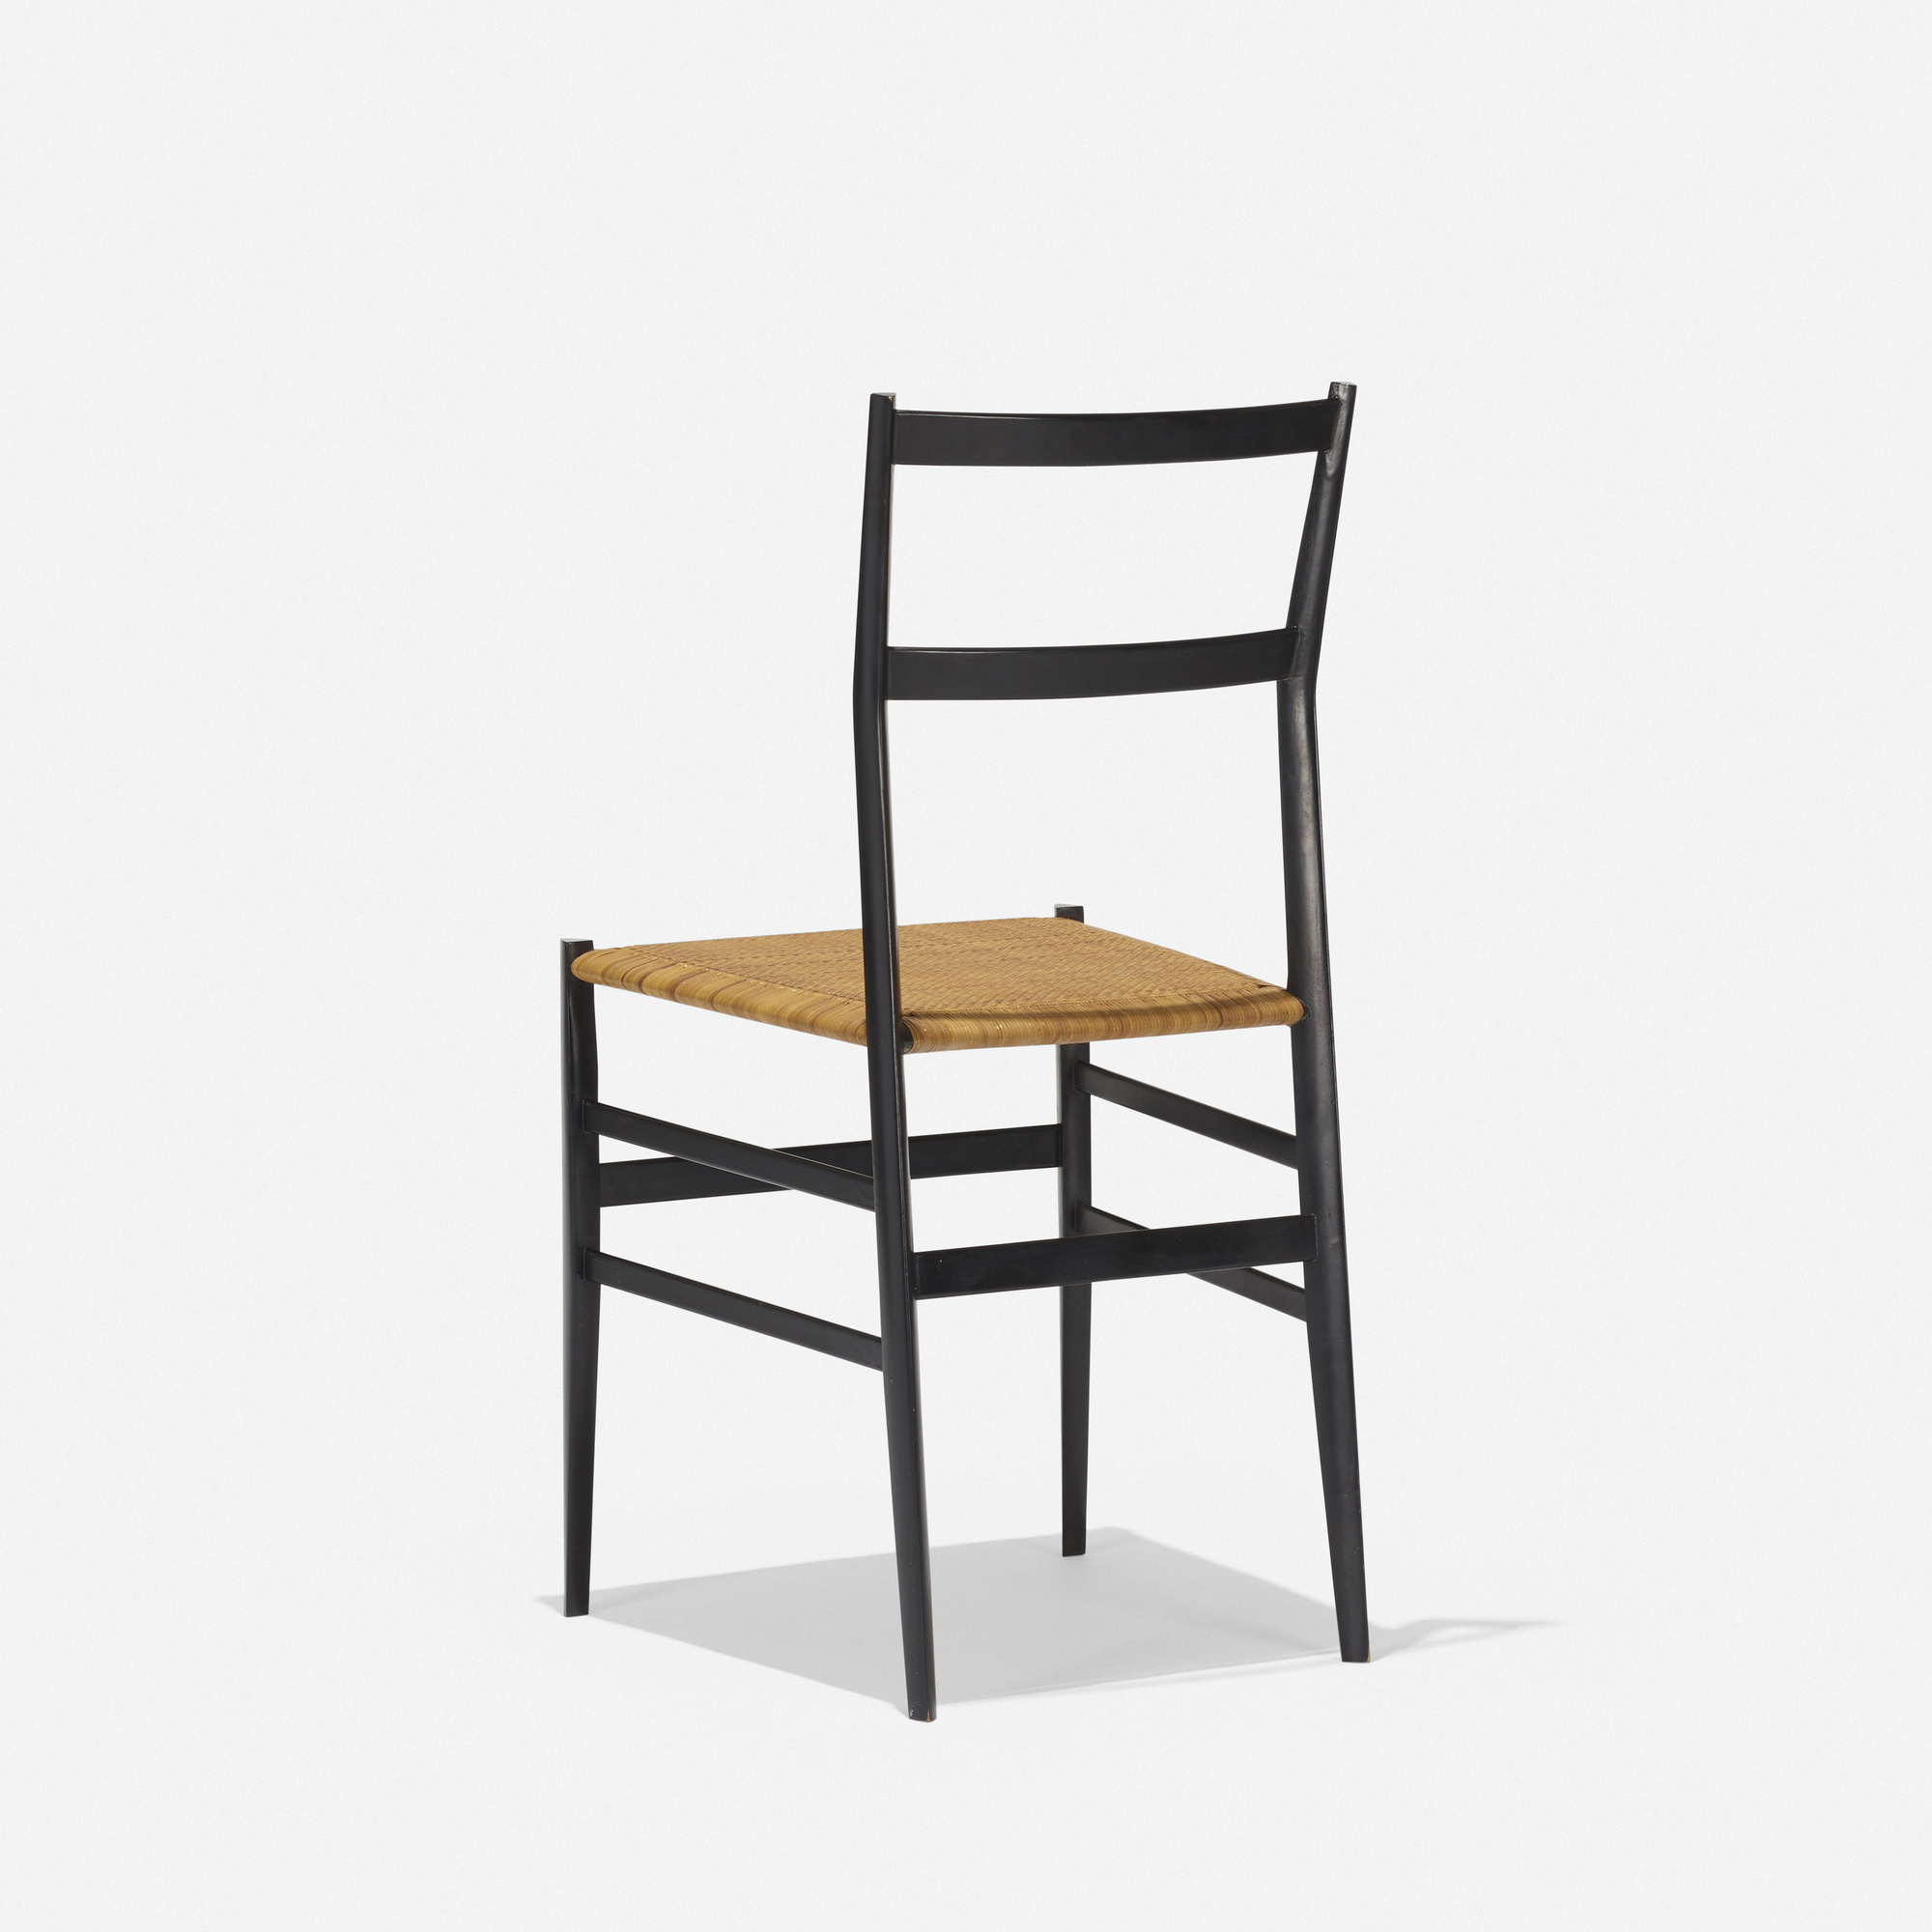 427: Gio Ponti / Superleggera chair (2 of 3)